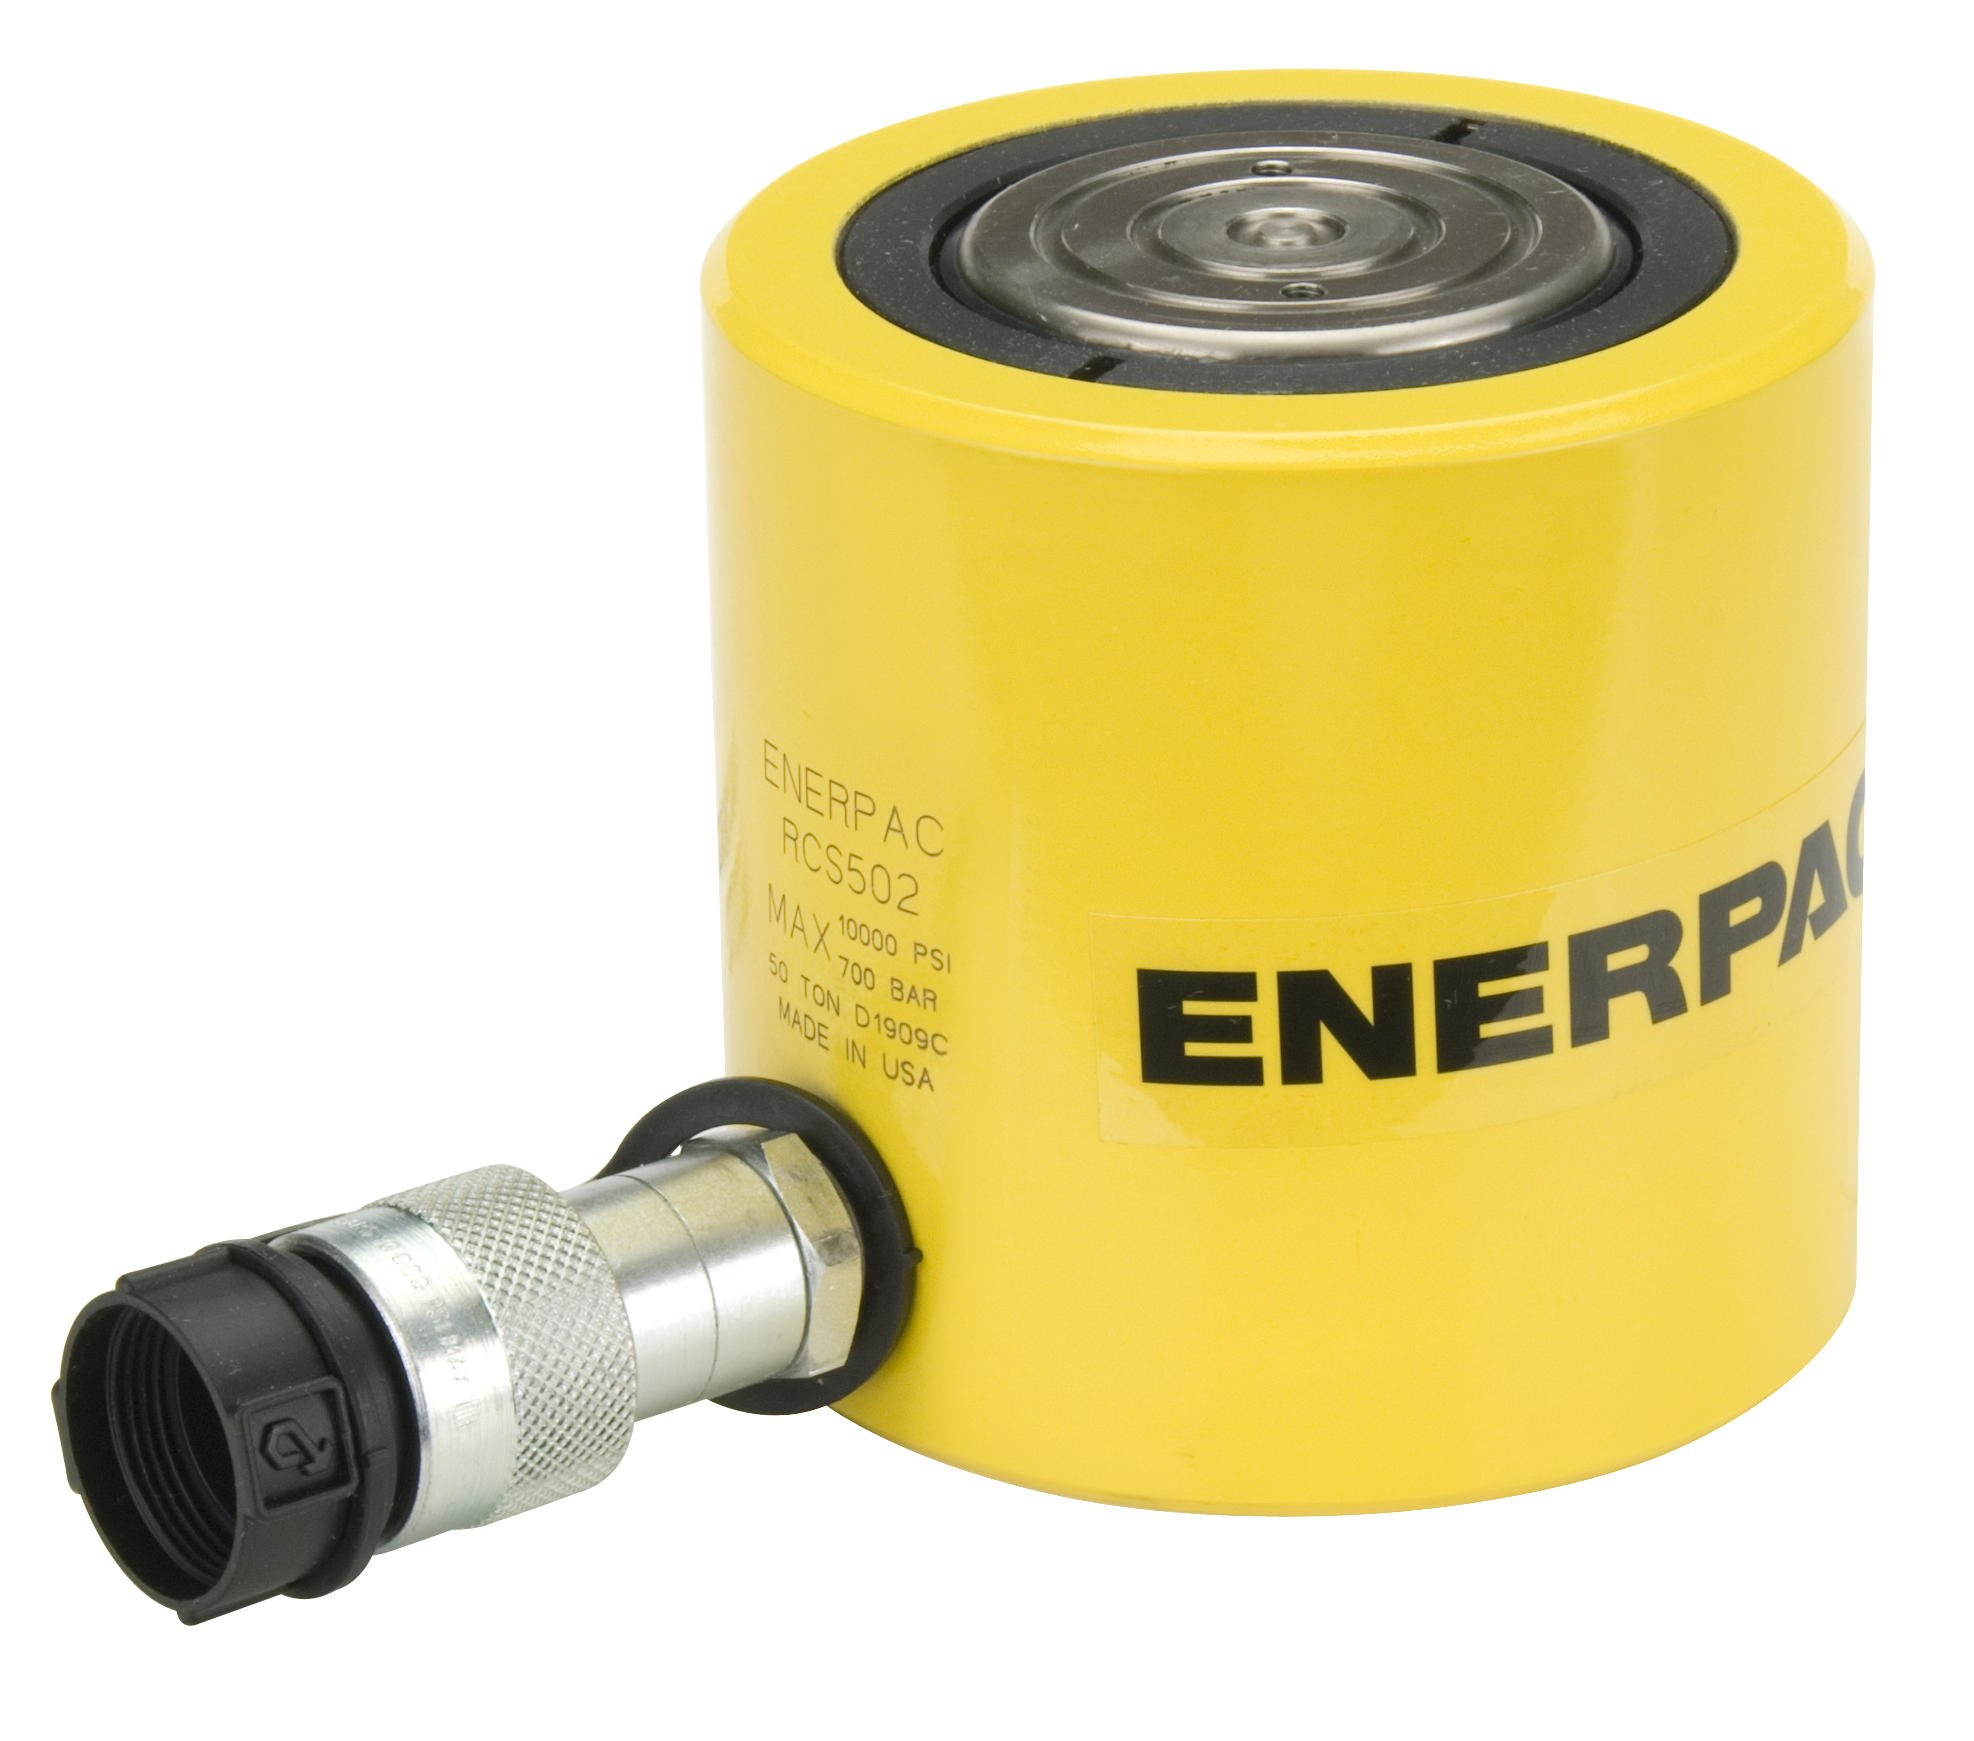 Enerpac RCS-302 Single-Acting Low-Height Hydraulic Cylinder with 30 Ton Capacity, Single Port, 2.44'' Stroke Length